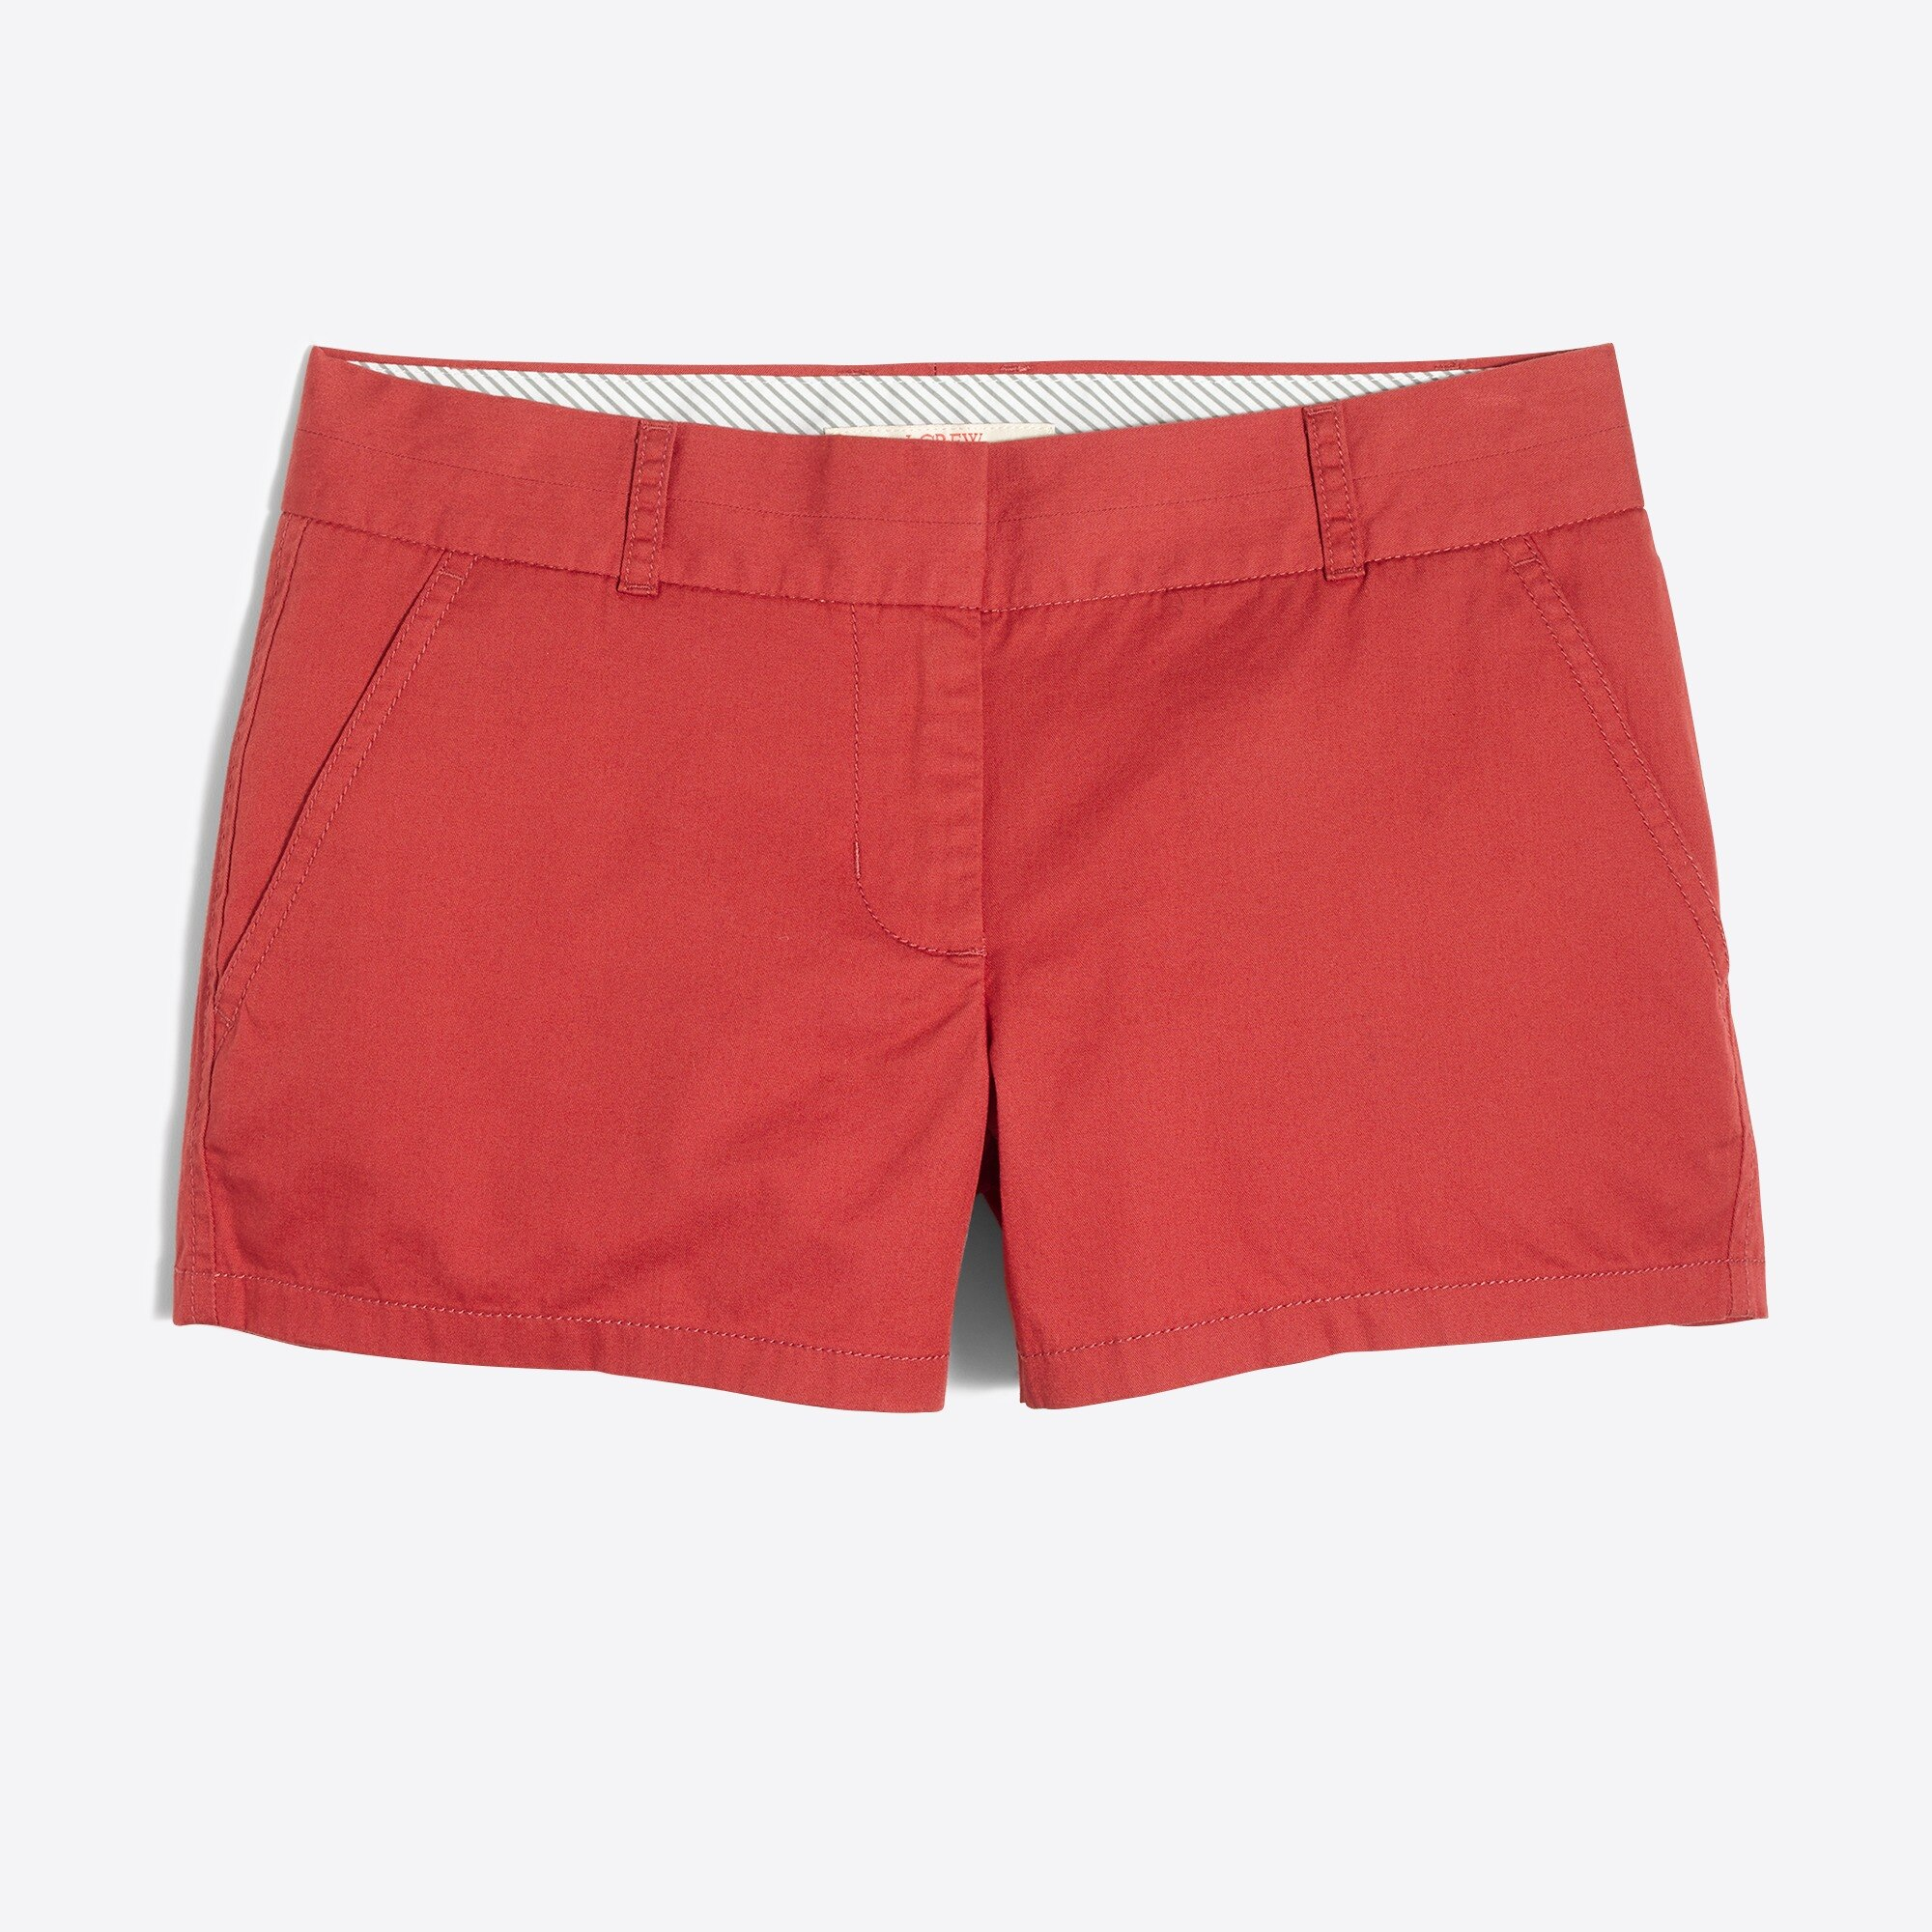 "Image 2 for 3"" chino short"